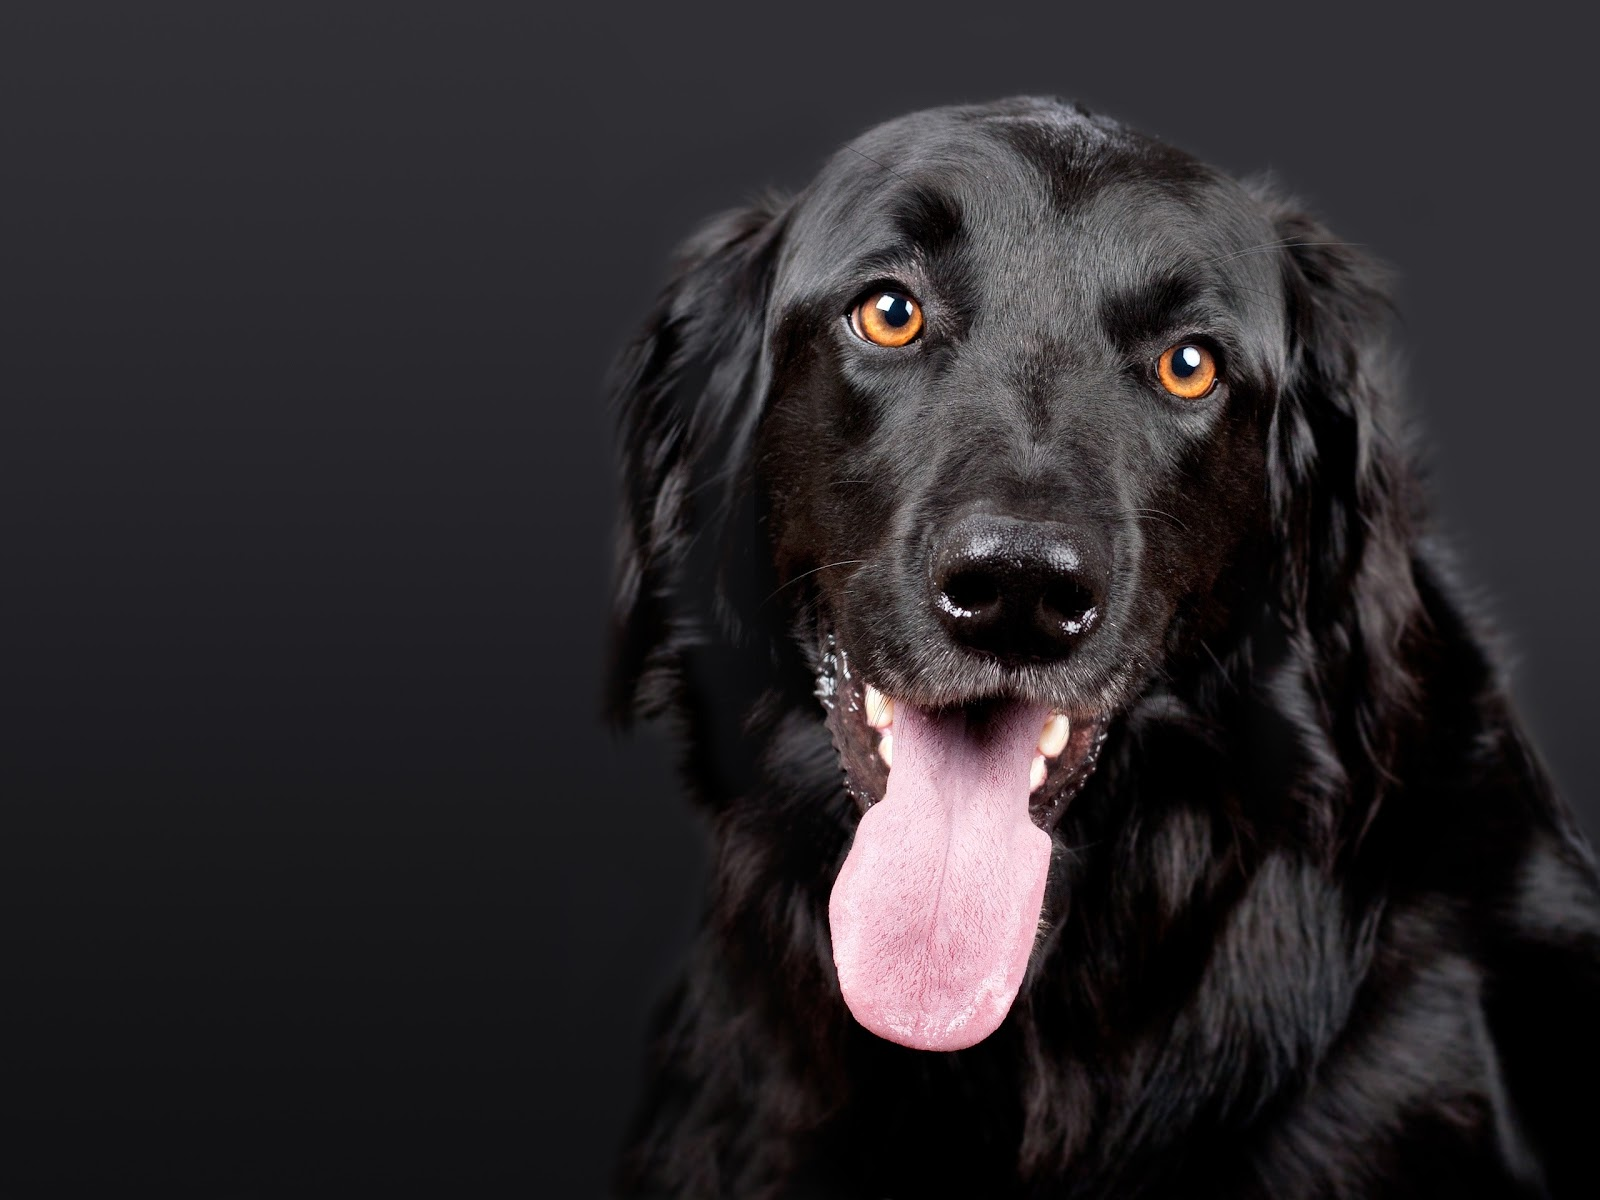 Black Dog with tongue sticking out